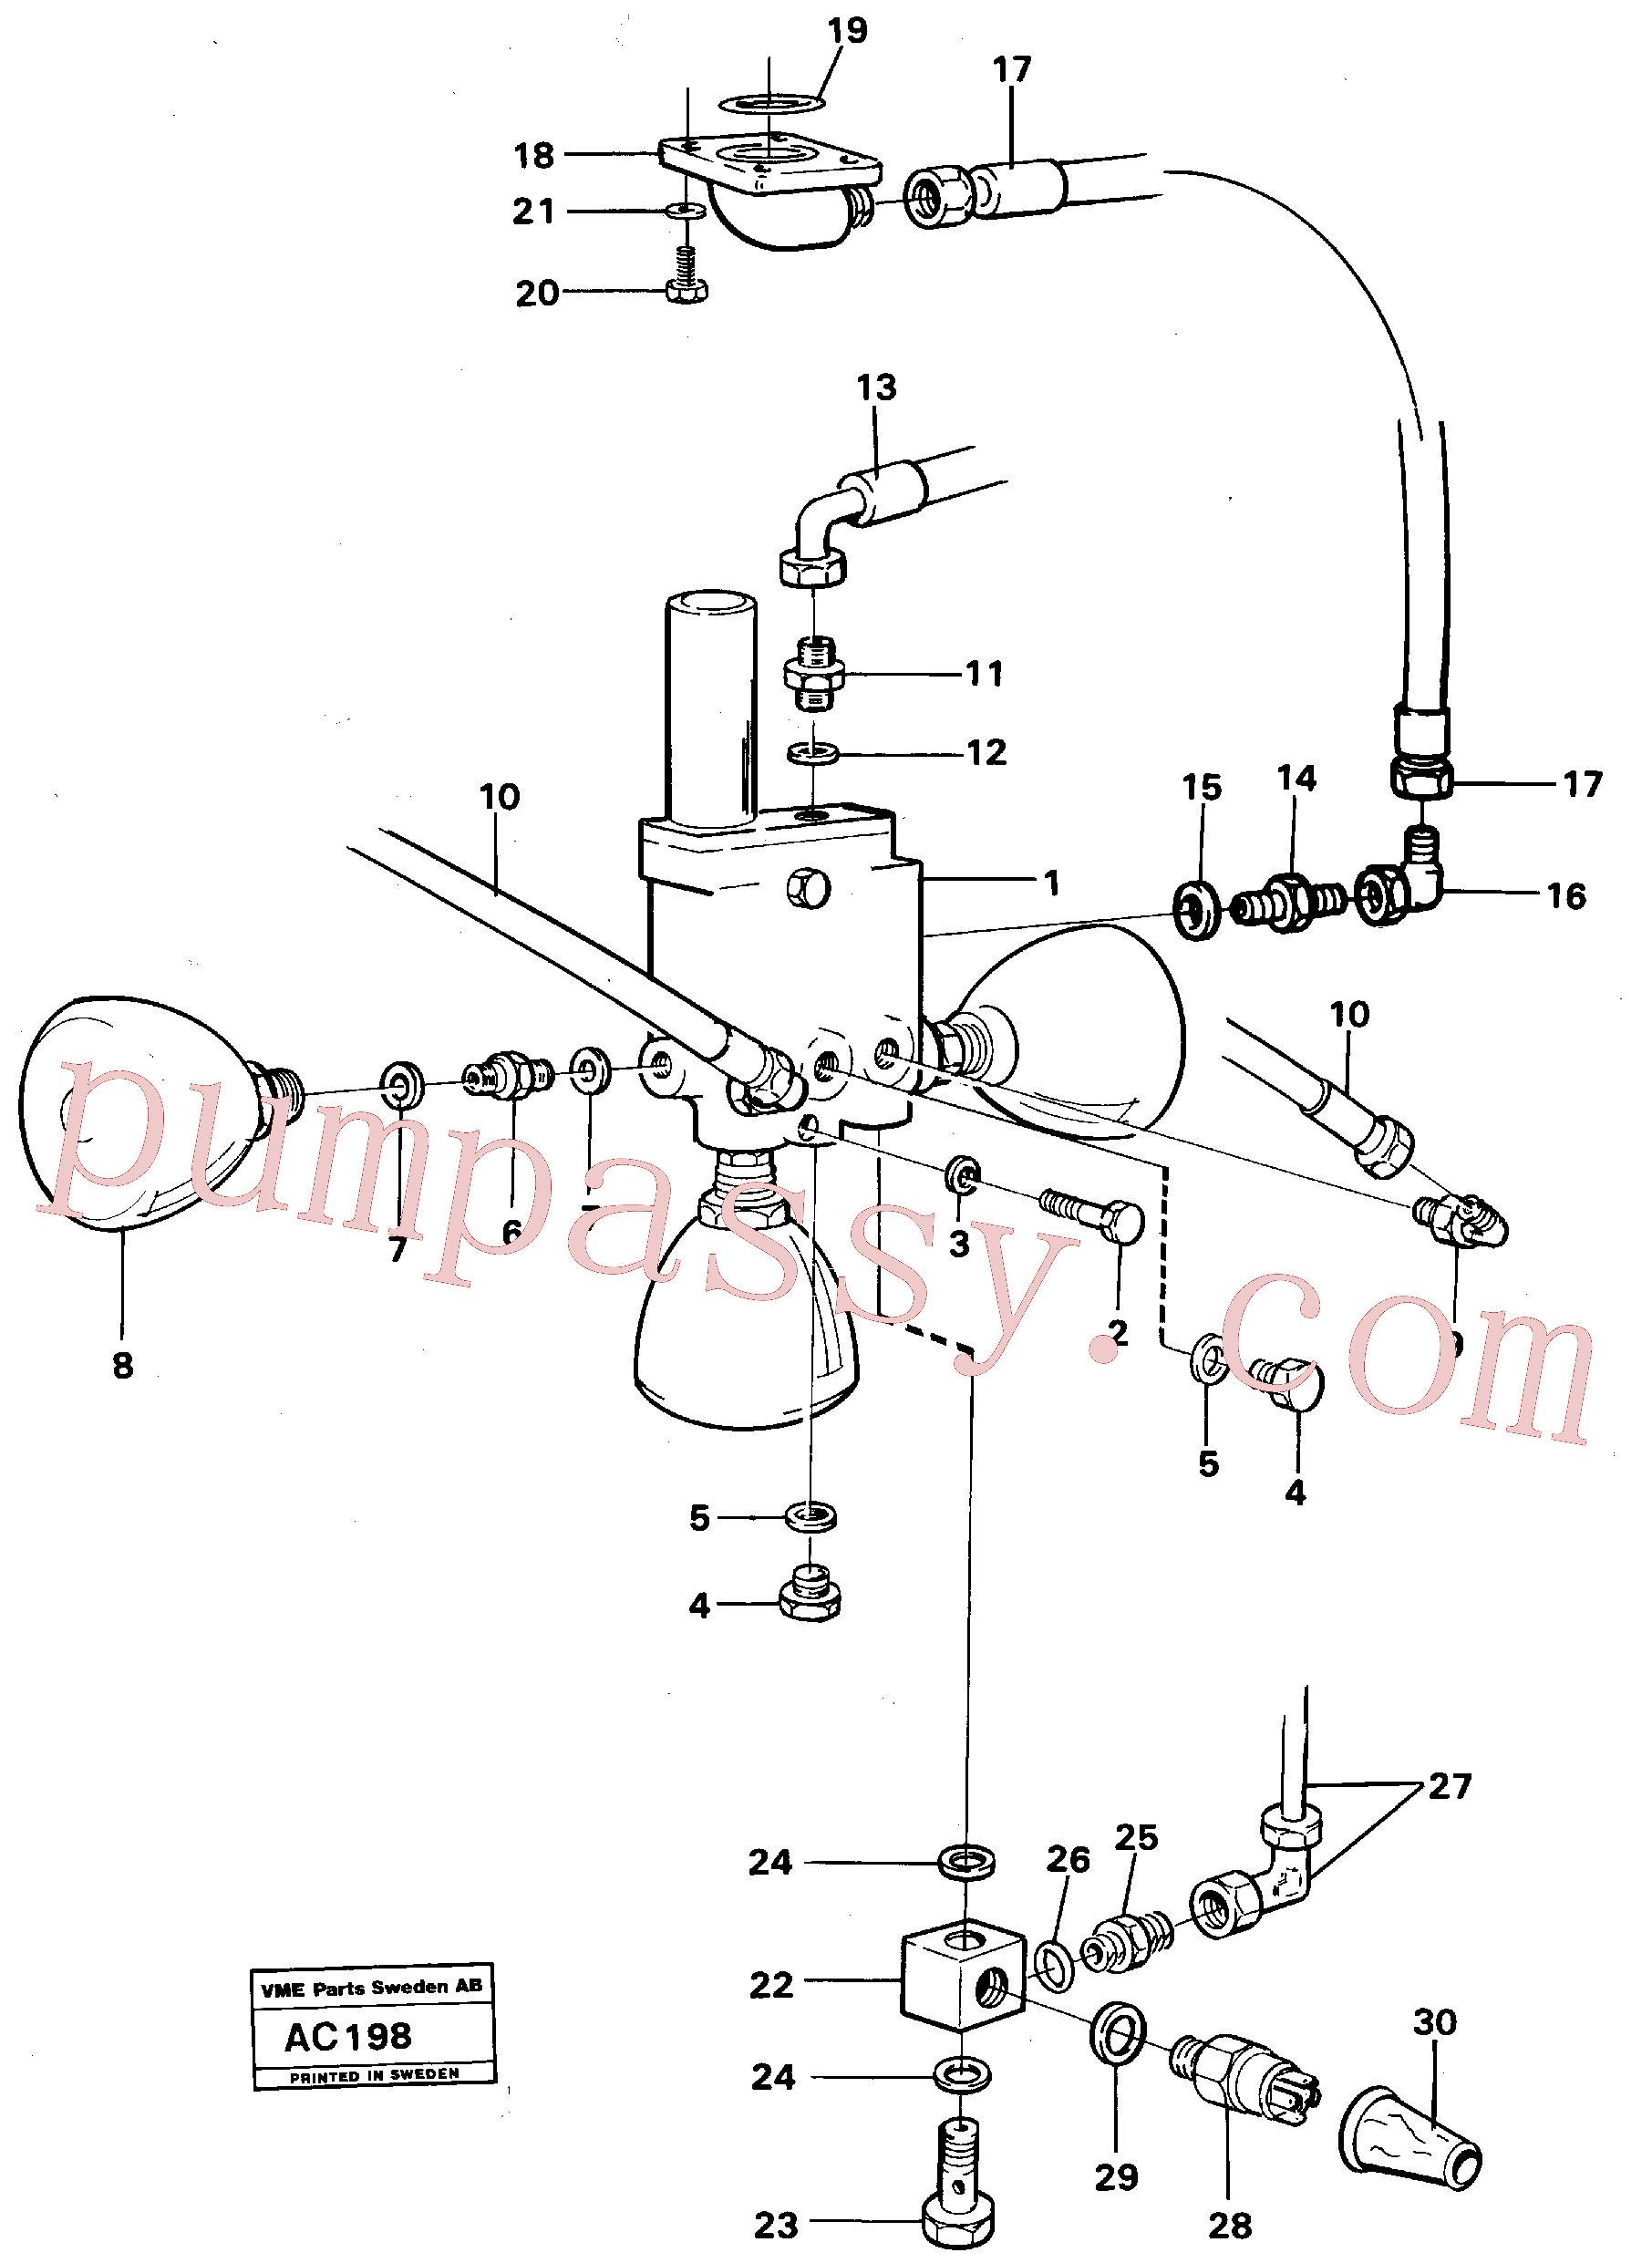 VOE192639 for Volvo Valve with fitting parts(AC198 assembly)